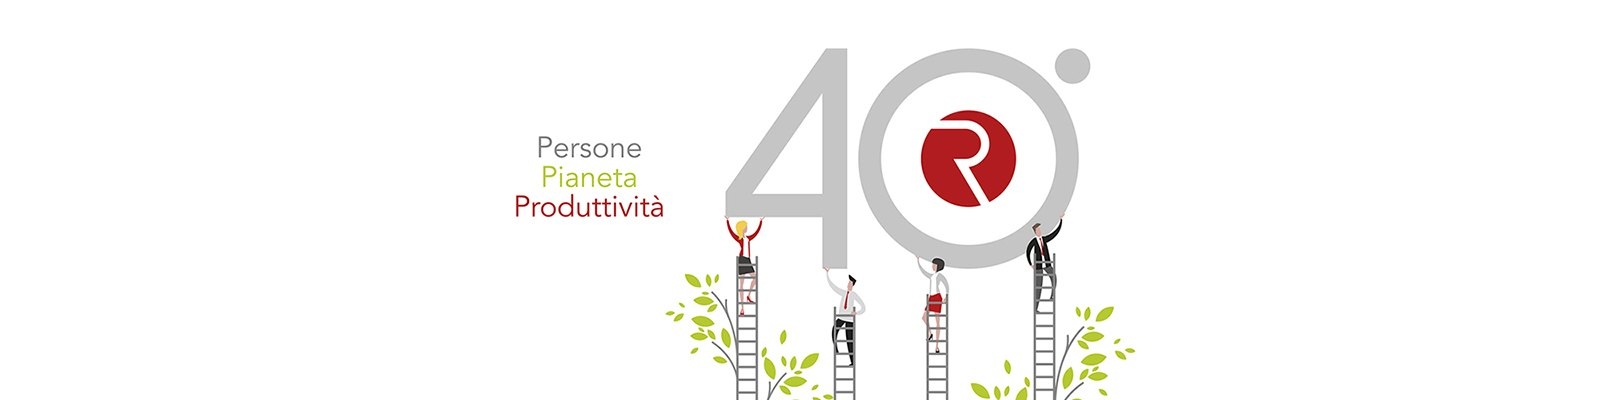 40 anni Ress Multiservices